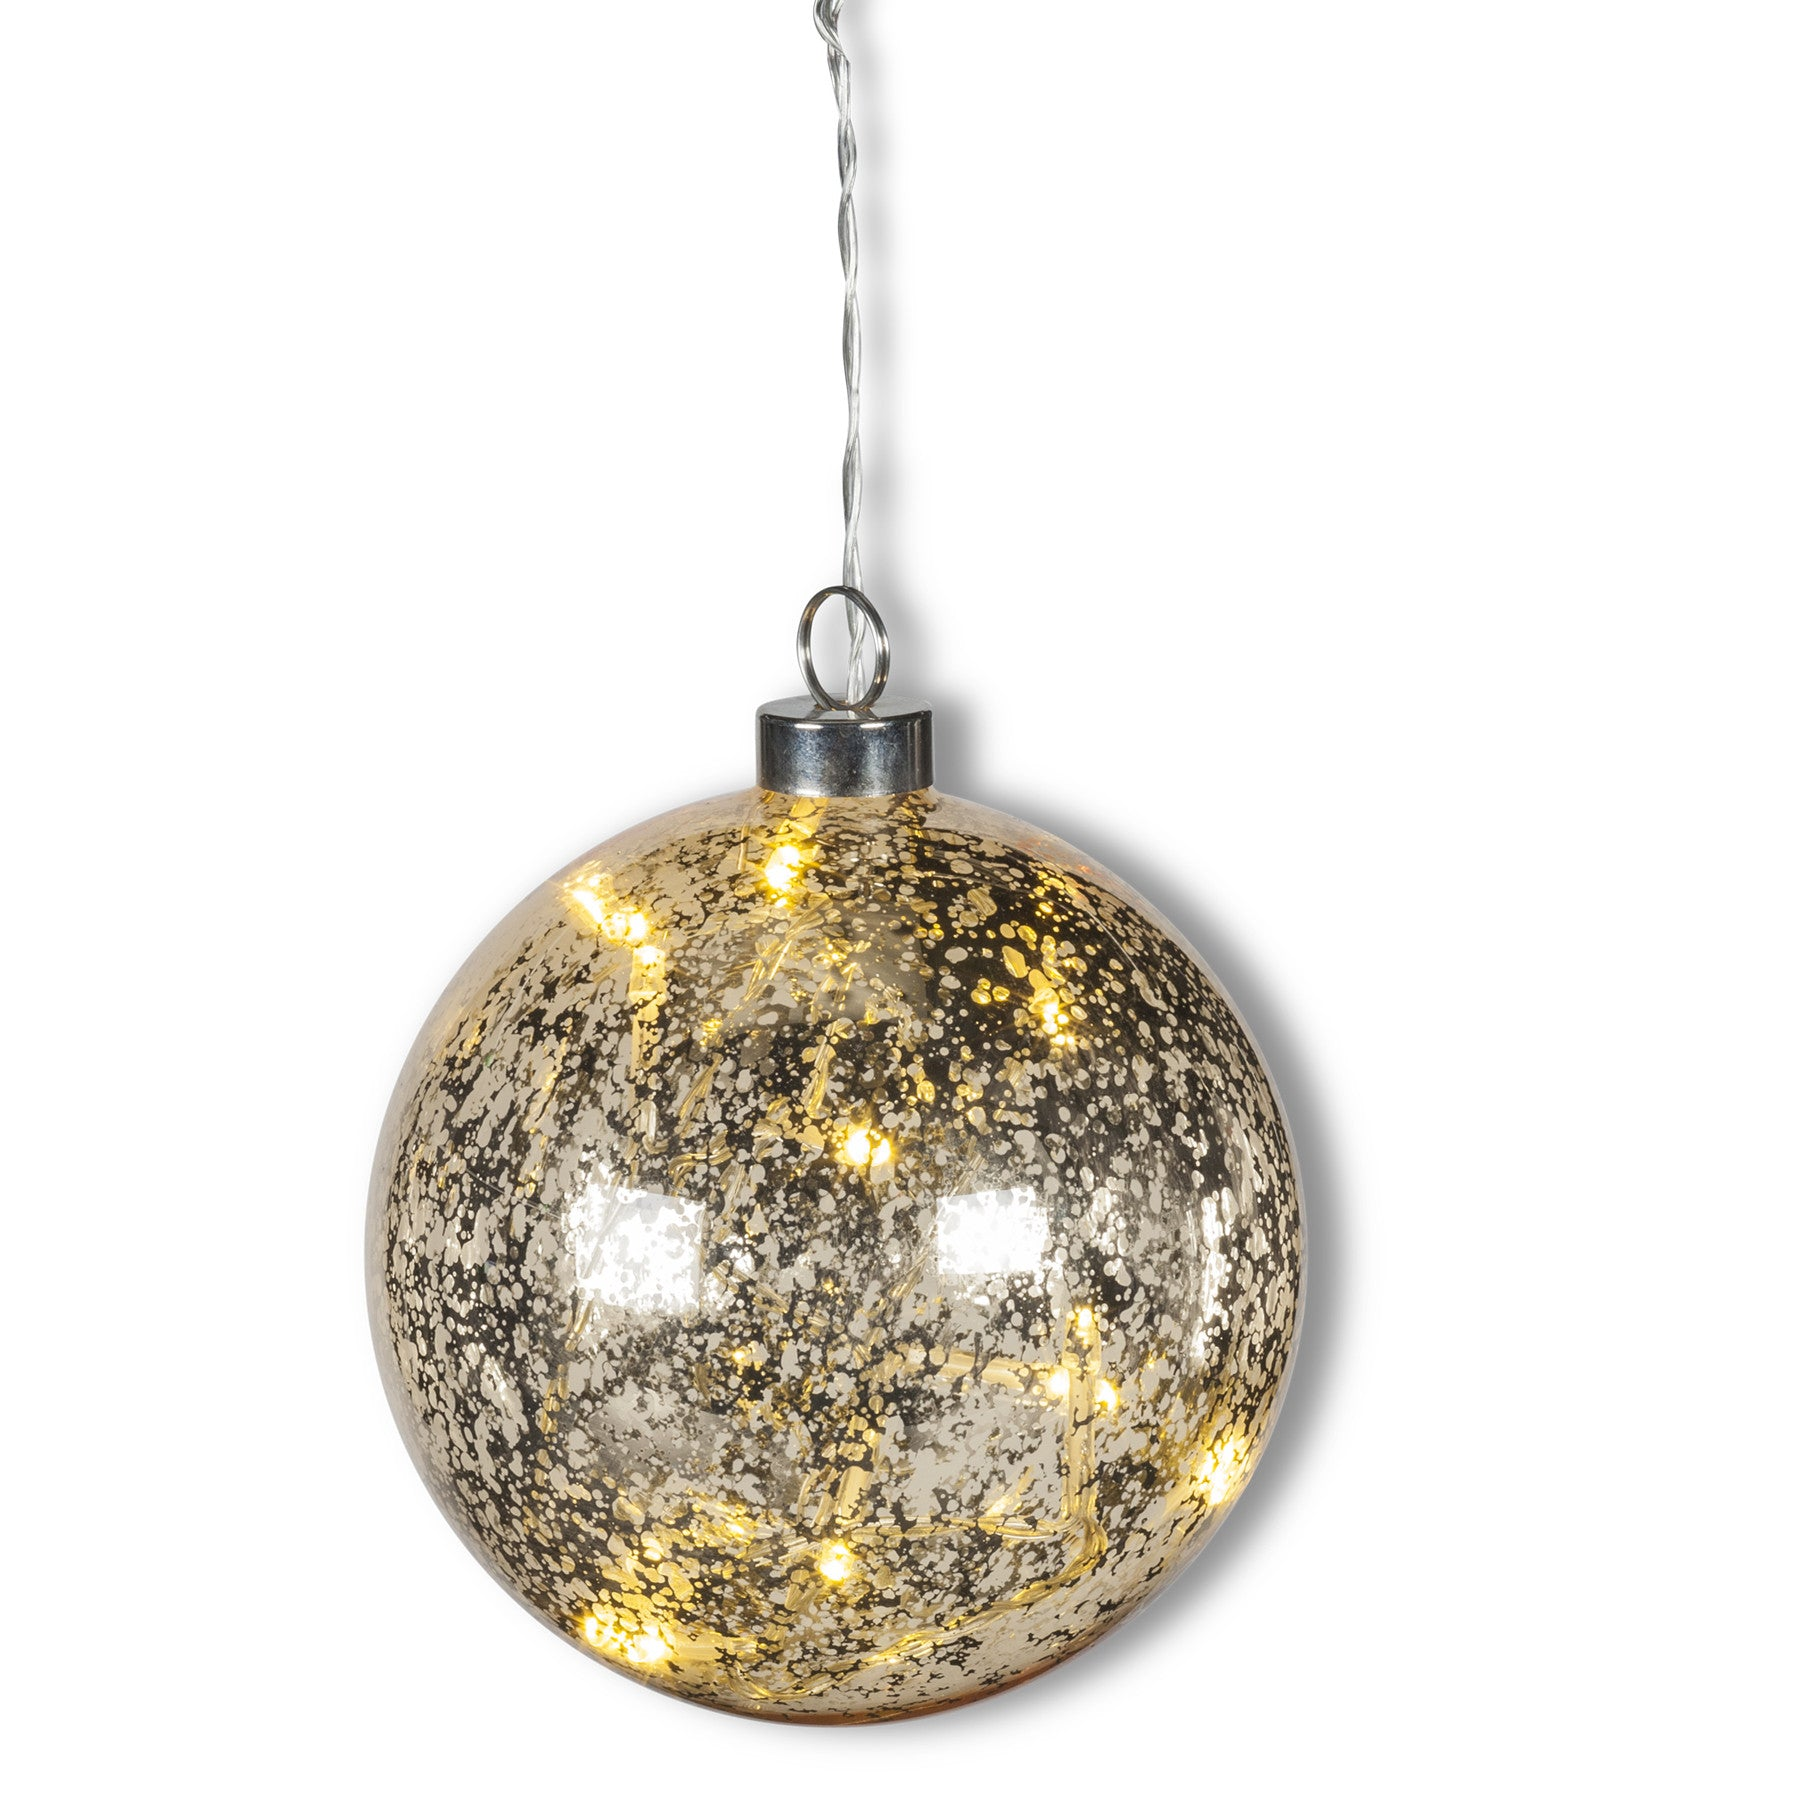 Hanging Ball LED Light - Gold